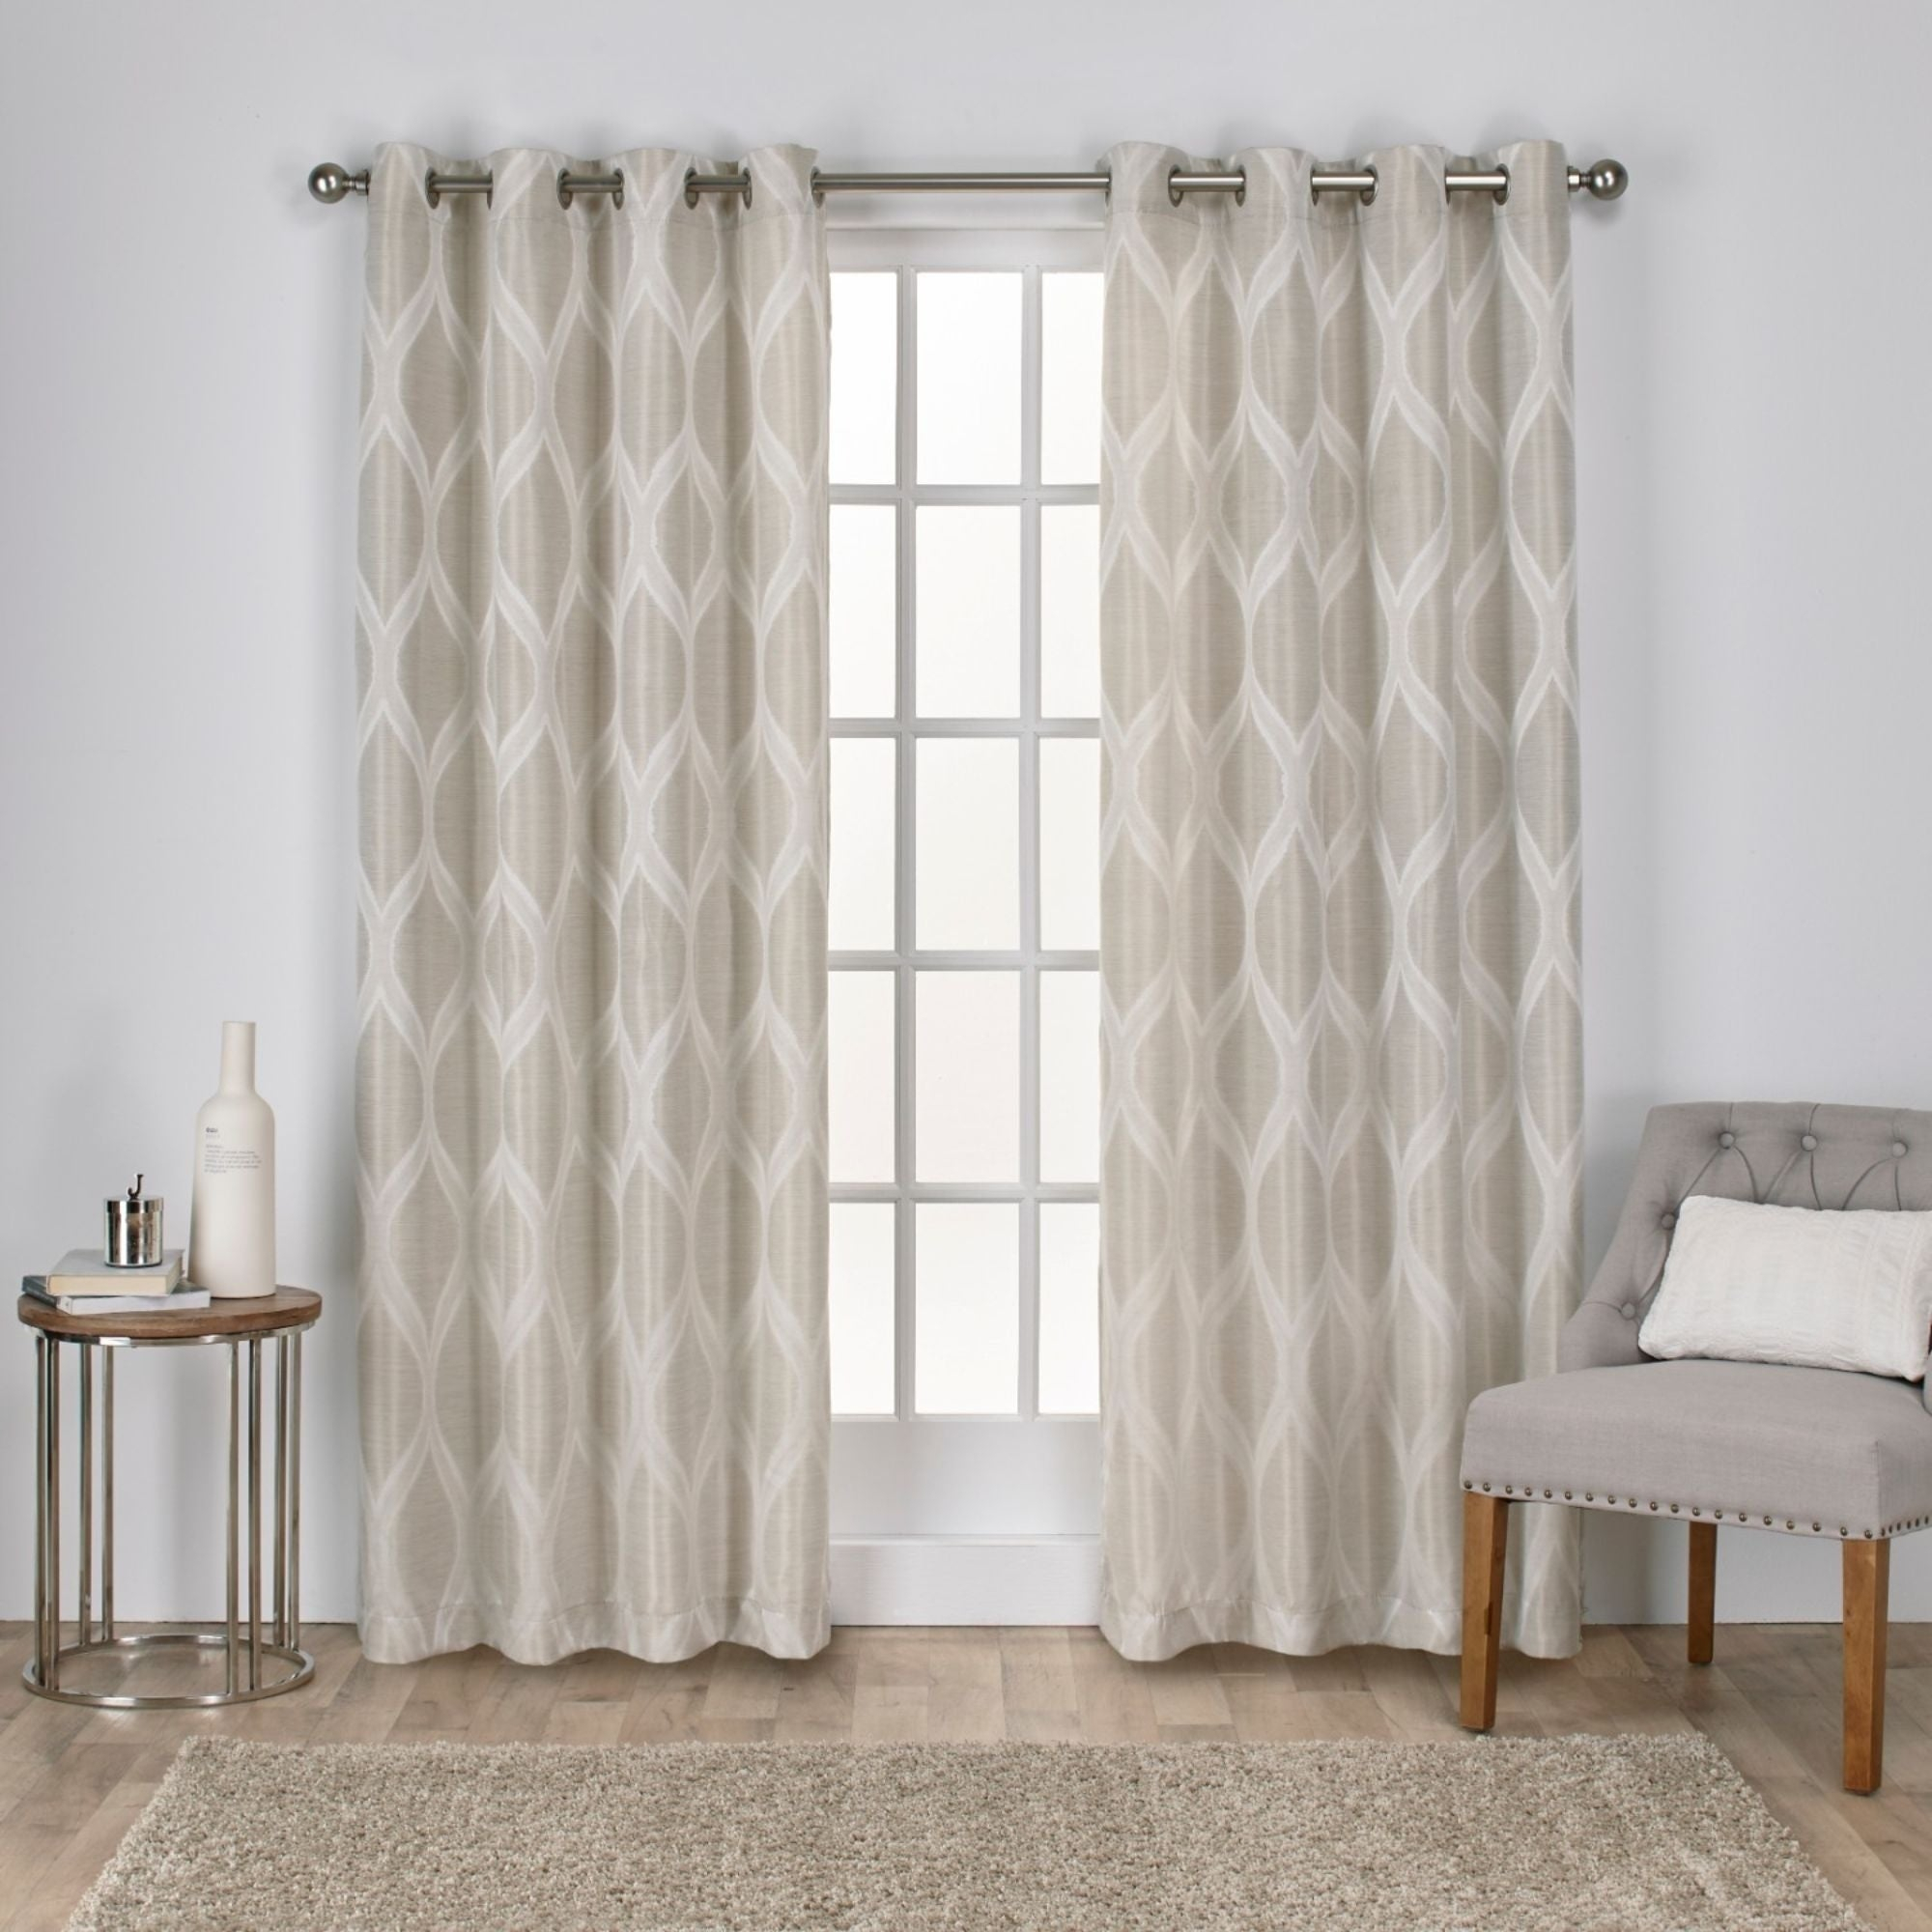 The Curated Nomad Carlton Jacquard Grommet Top Curtain Panel Pair Intended For The Curated Nomad Duane Jacquard Grommet Top Curtain Panel Pairs (View 4 of 30)